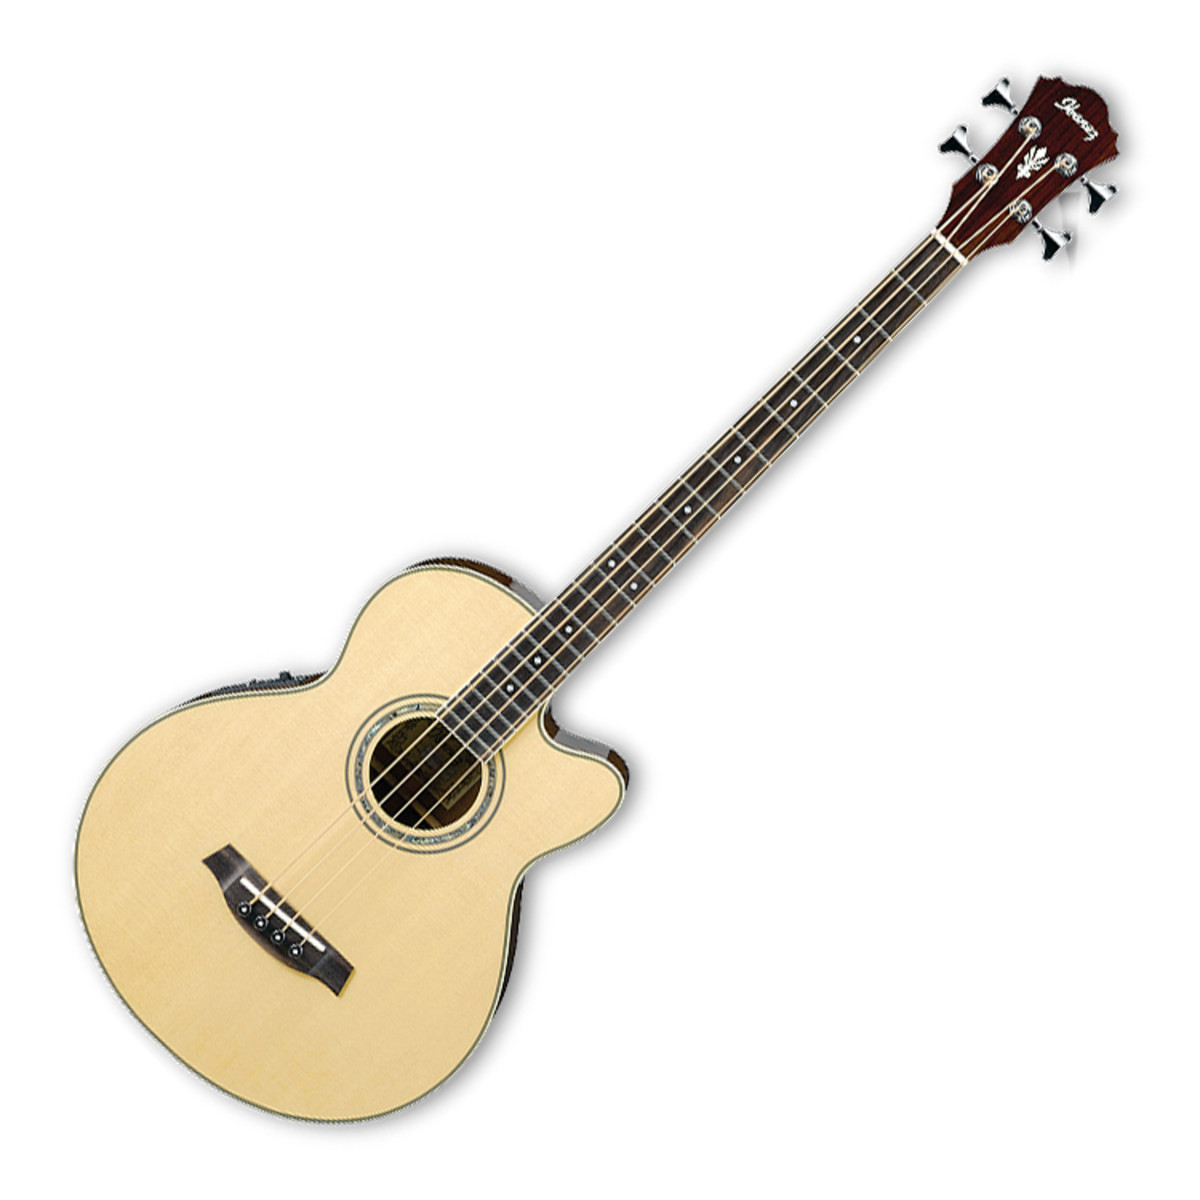 disc ibanez aeb10e electro acoustic bass guitar natural at gear4music. Black Bedroom Furniture Sets. Home Design Ideas